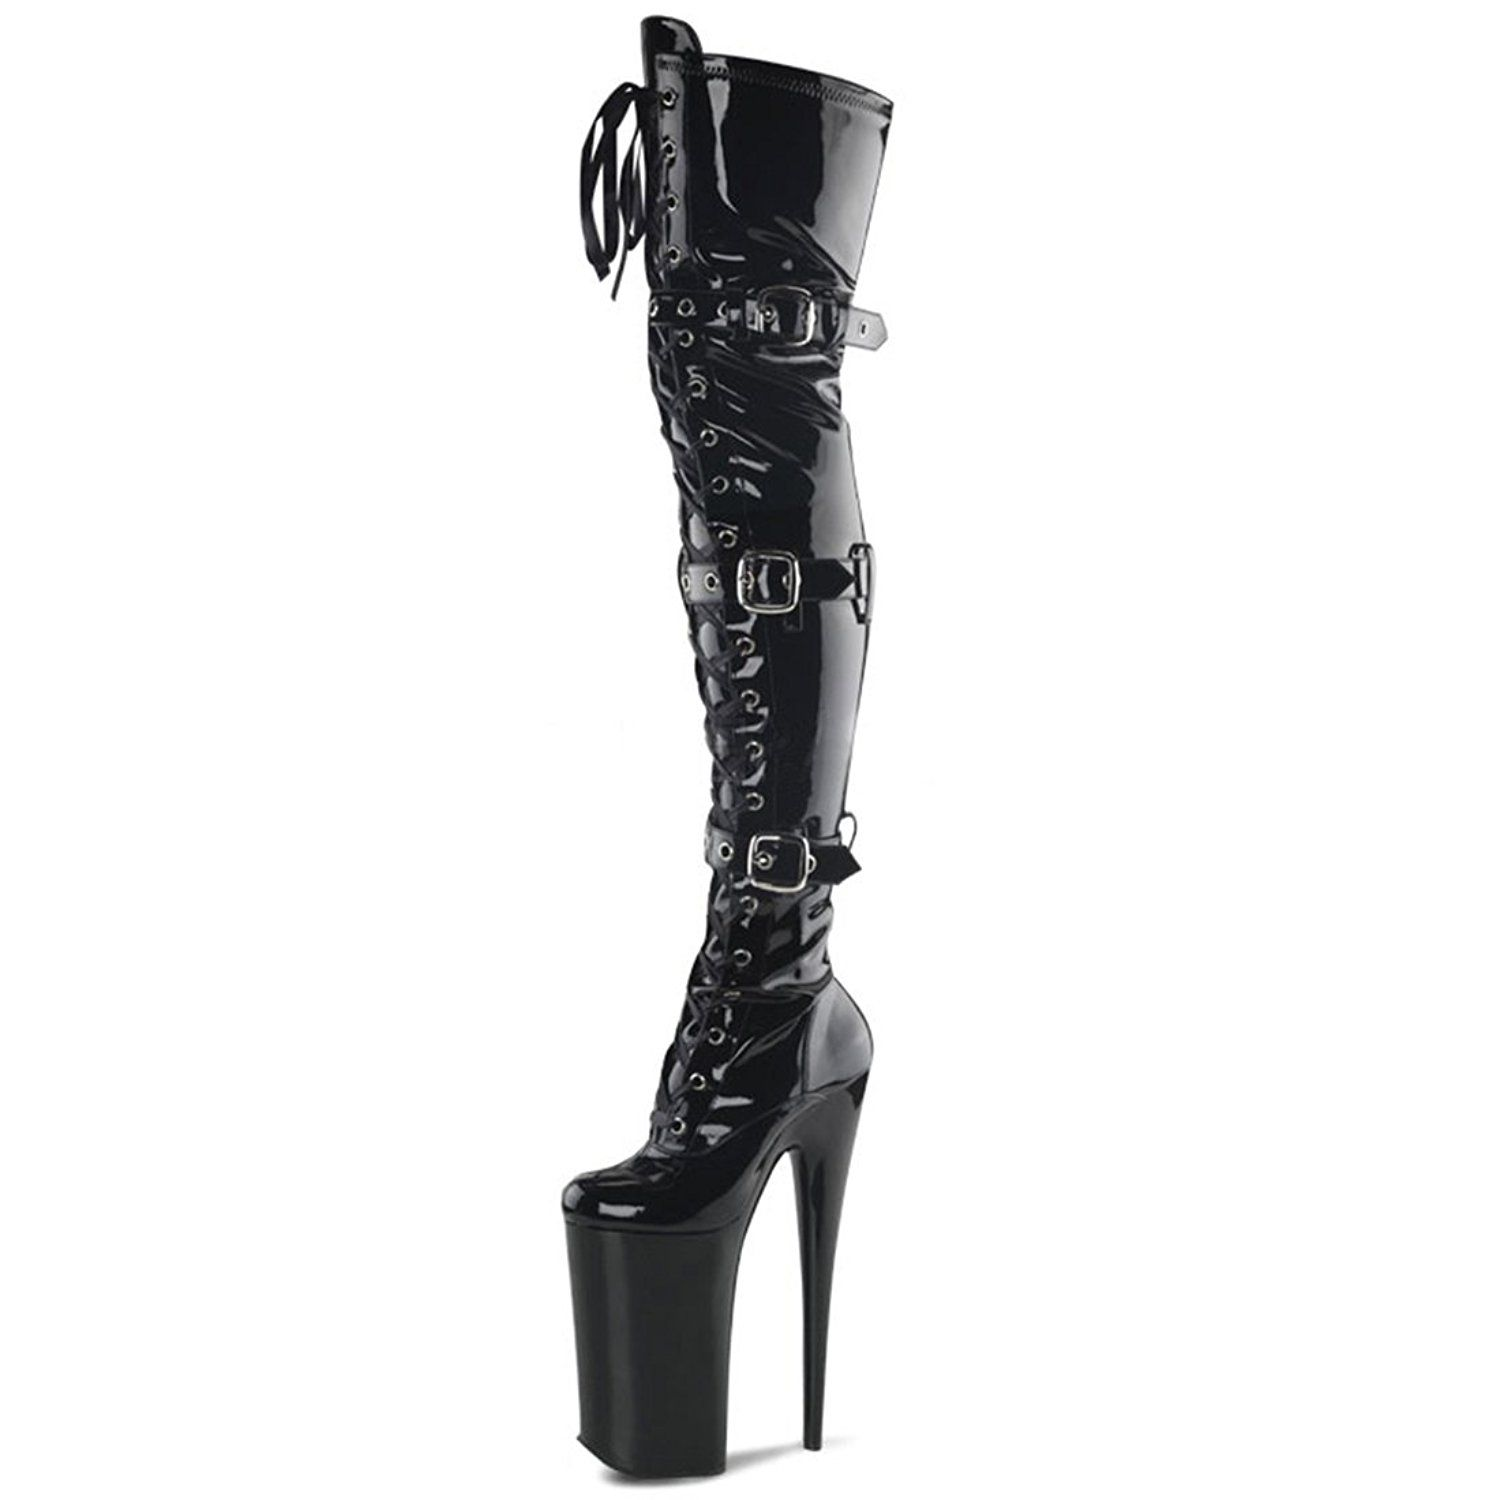 Glossy Black Thigh High Boots with Lace Up Front Buckles and 10 Inch Heels